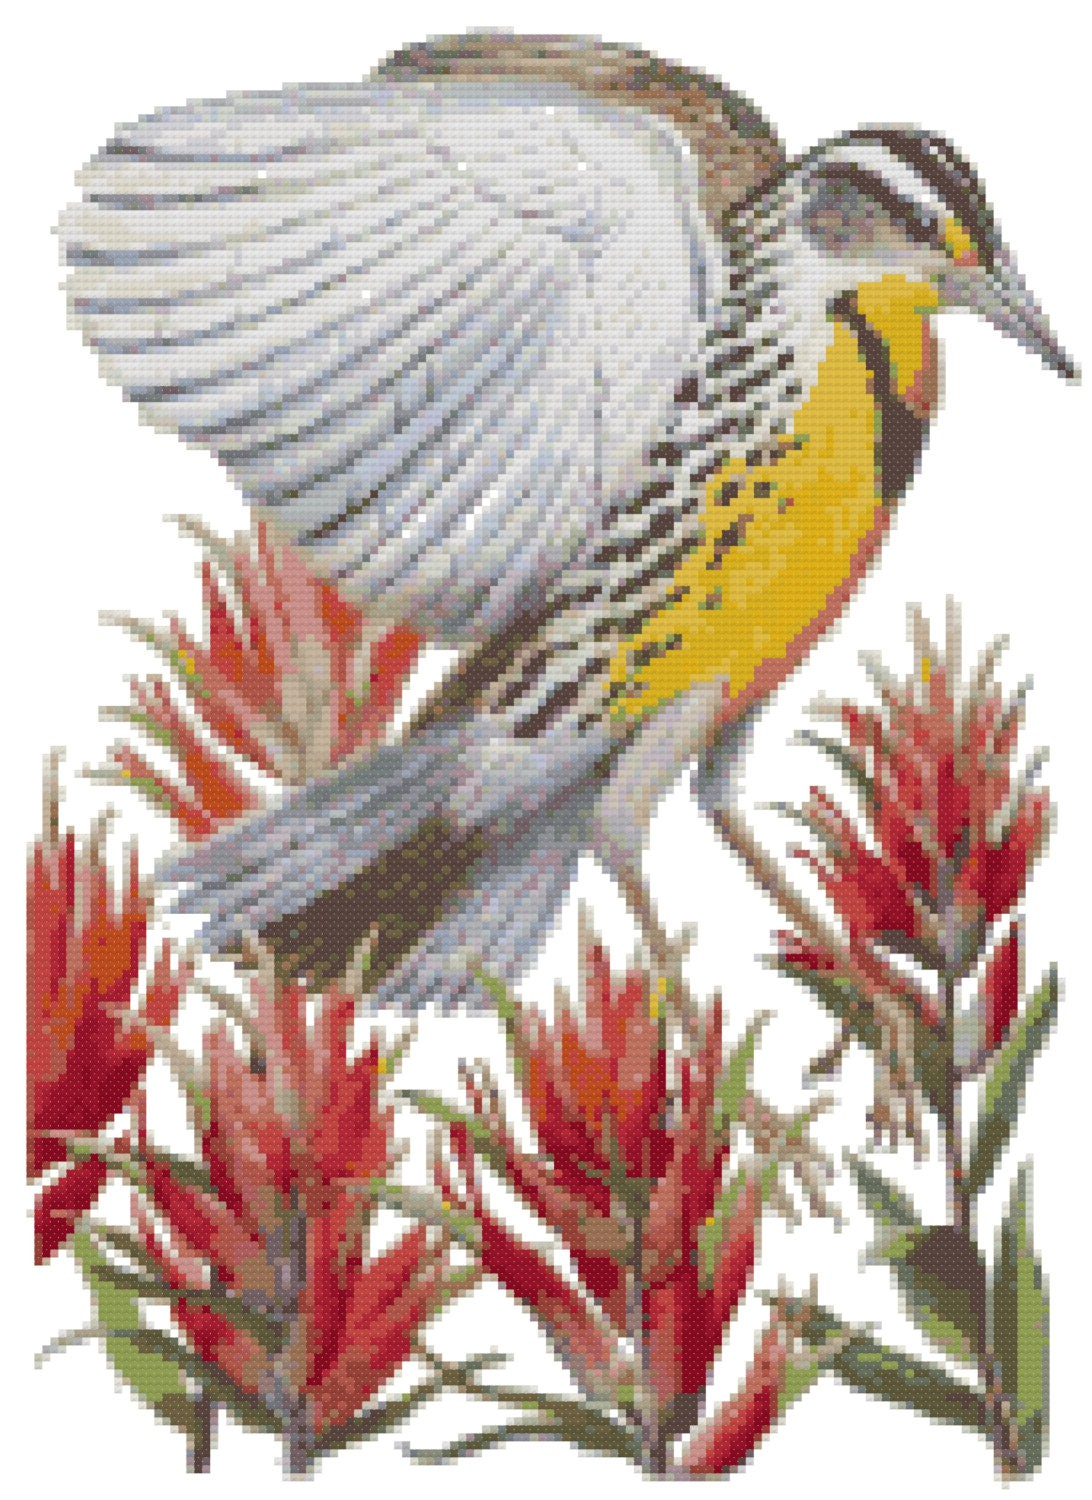 Wyoming State Bird & Flower Counted Cross Stitch Pattern from BostonNeedl